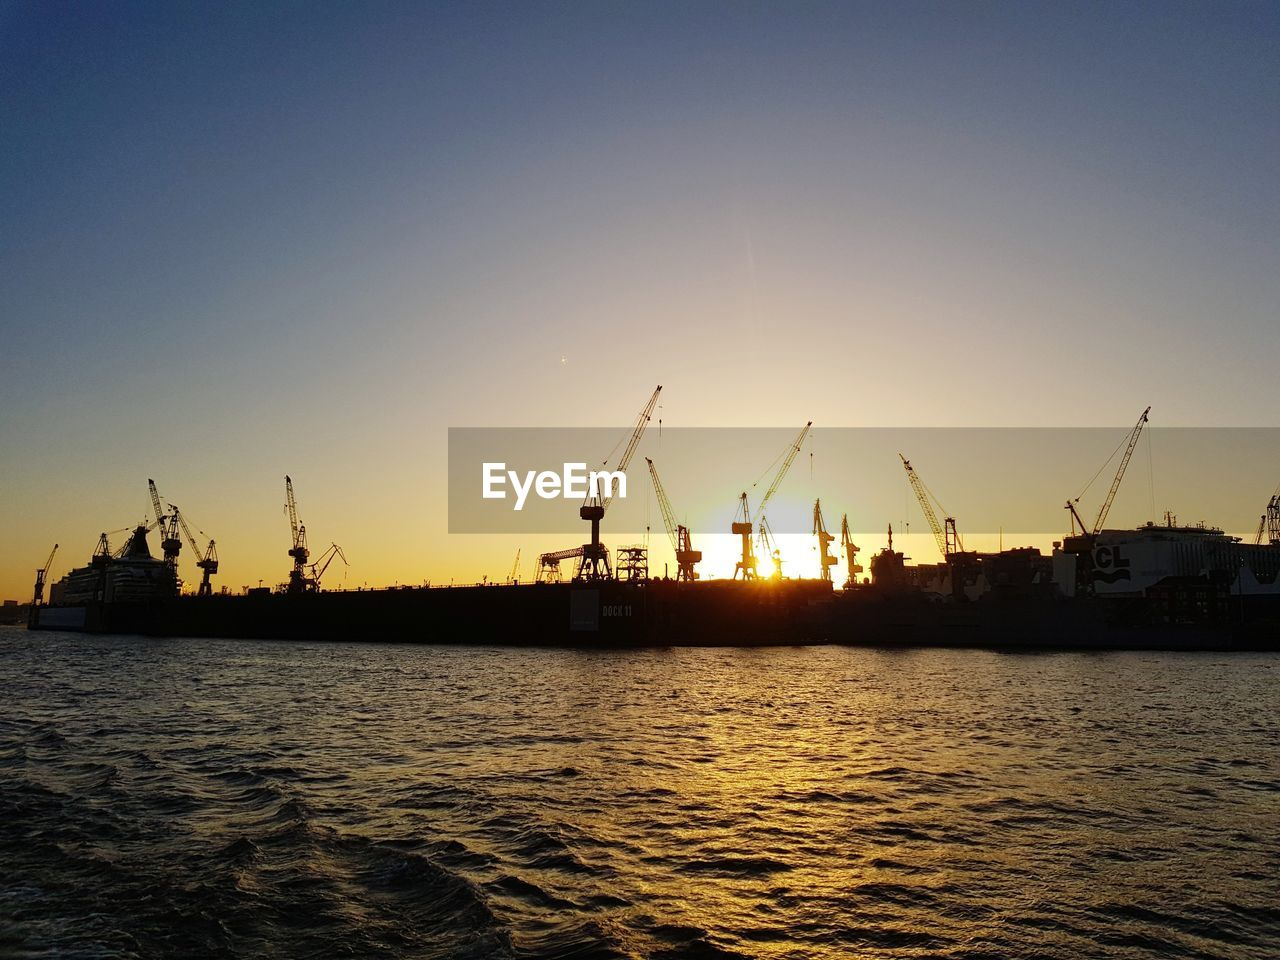 sunset, water, silhouette, clear sky, no people, transportation, nautical vessel, nature, crane - construction machinery, sea, waterfront, freight transportation, tranquility, sky, outdoors, commercial dock, harbor, beauty in nature, day